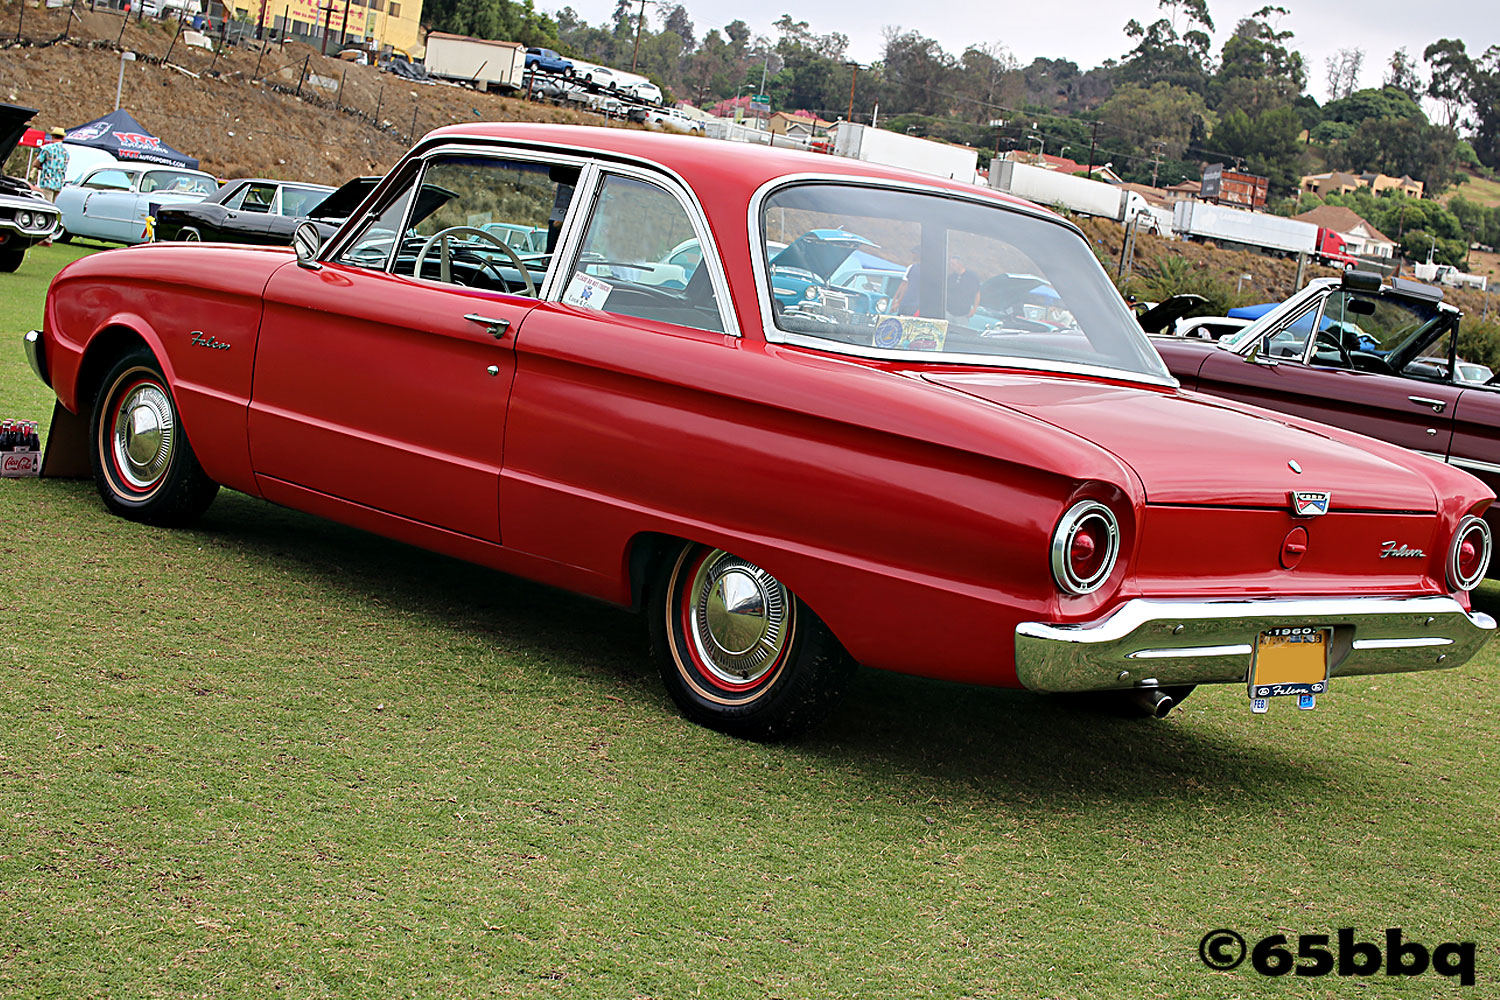 so-cal-falcons-classics-in-the-park-2018-65bbq-38.jpg